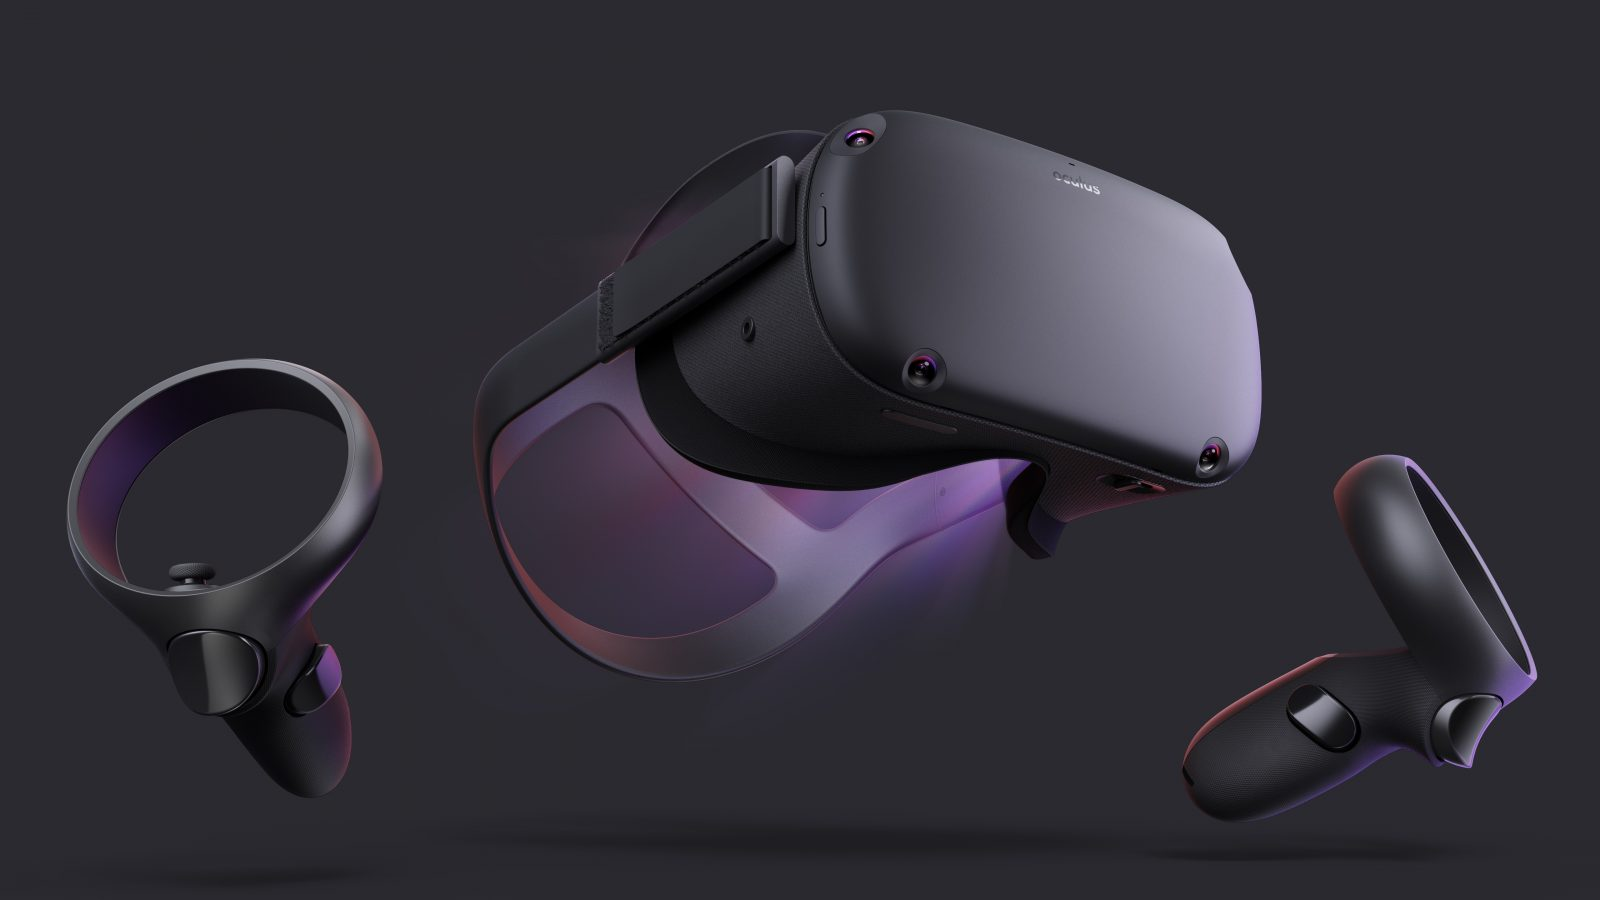 Oculus Quest: All-in-one VR